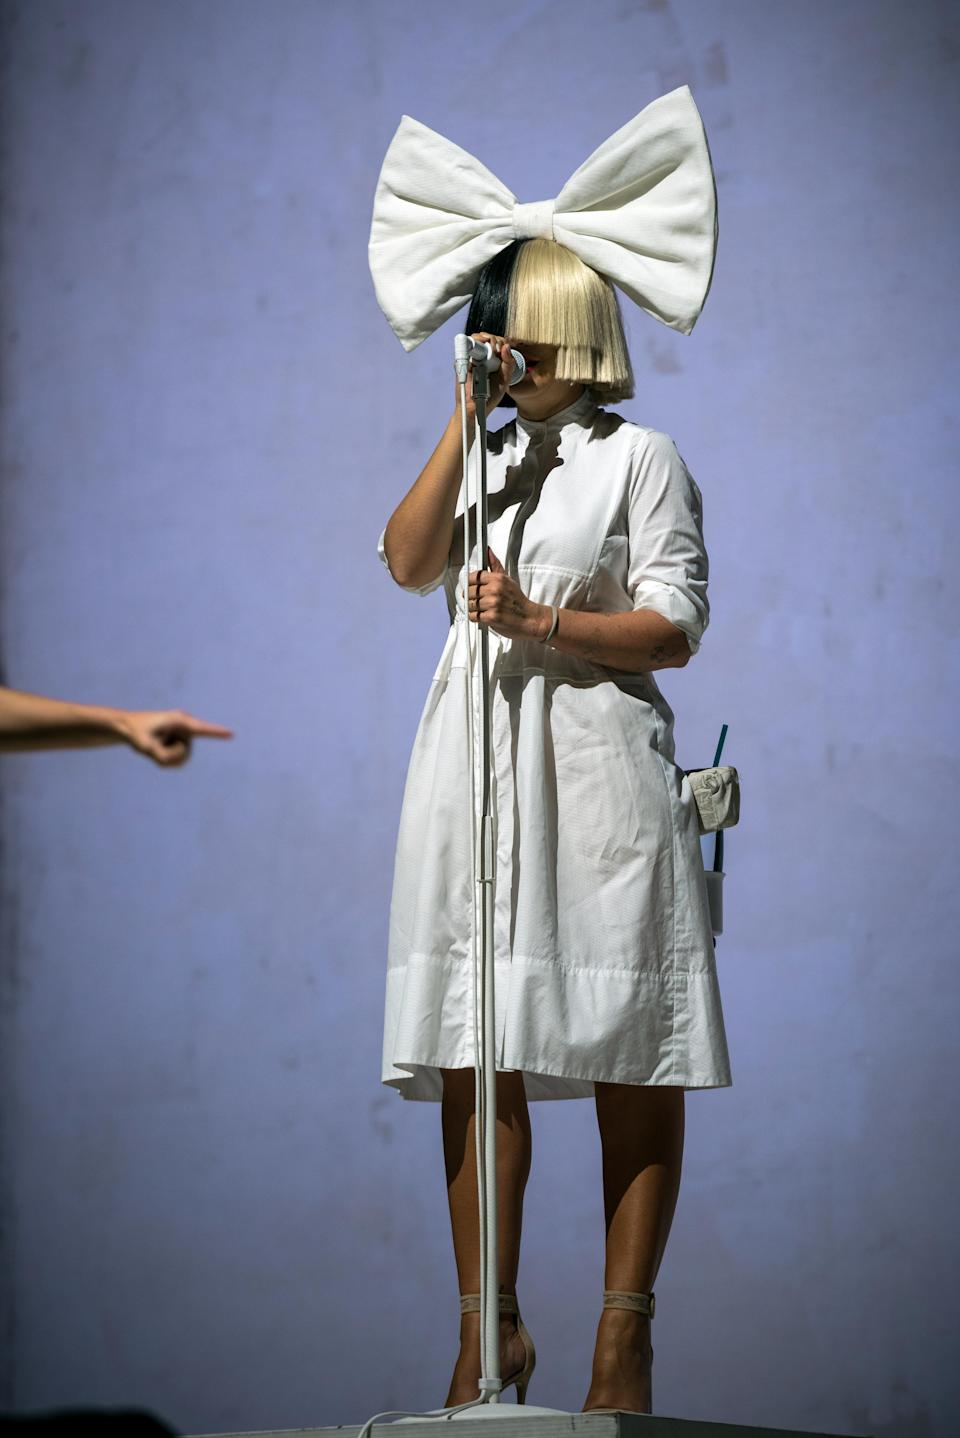 Skanderborg, Denmark. 05th, August 2016. Sia, the Australian pop singer and songwriter, performs a live concert at the Danish music festival SmukFest 2016.  (Photo by: Gonzales Photo/Rod Clemen/PYMCA/Avalon/Universal Images Group via Getty Images)